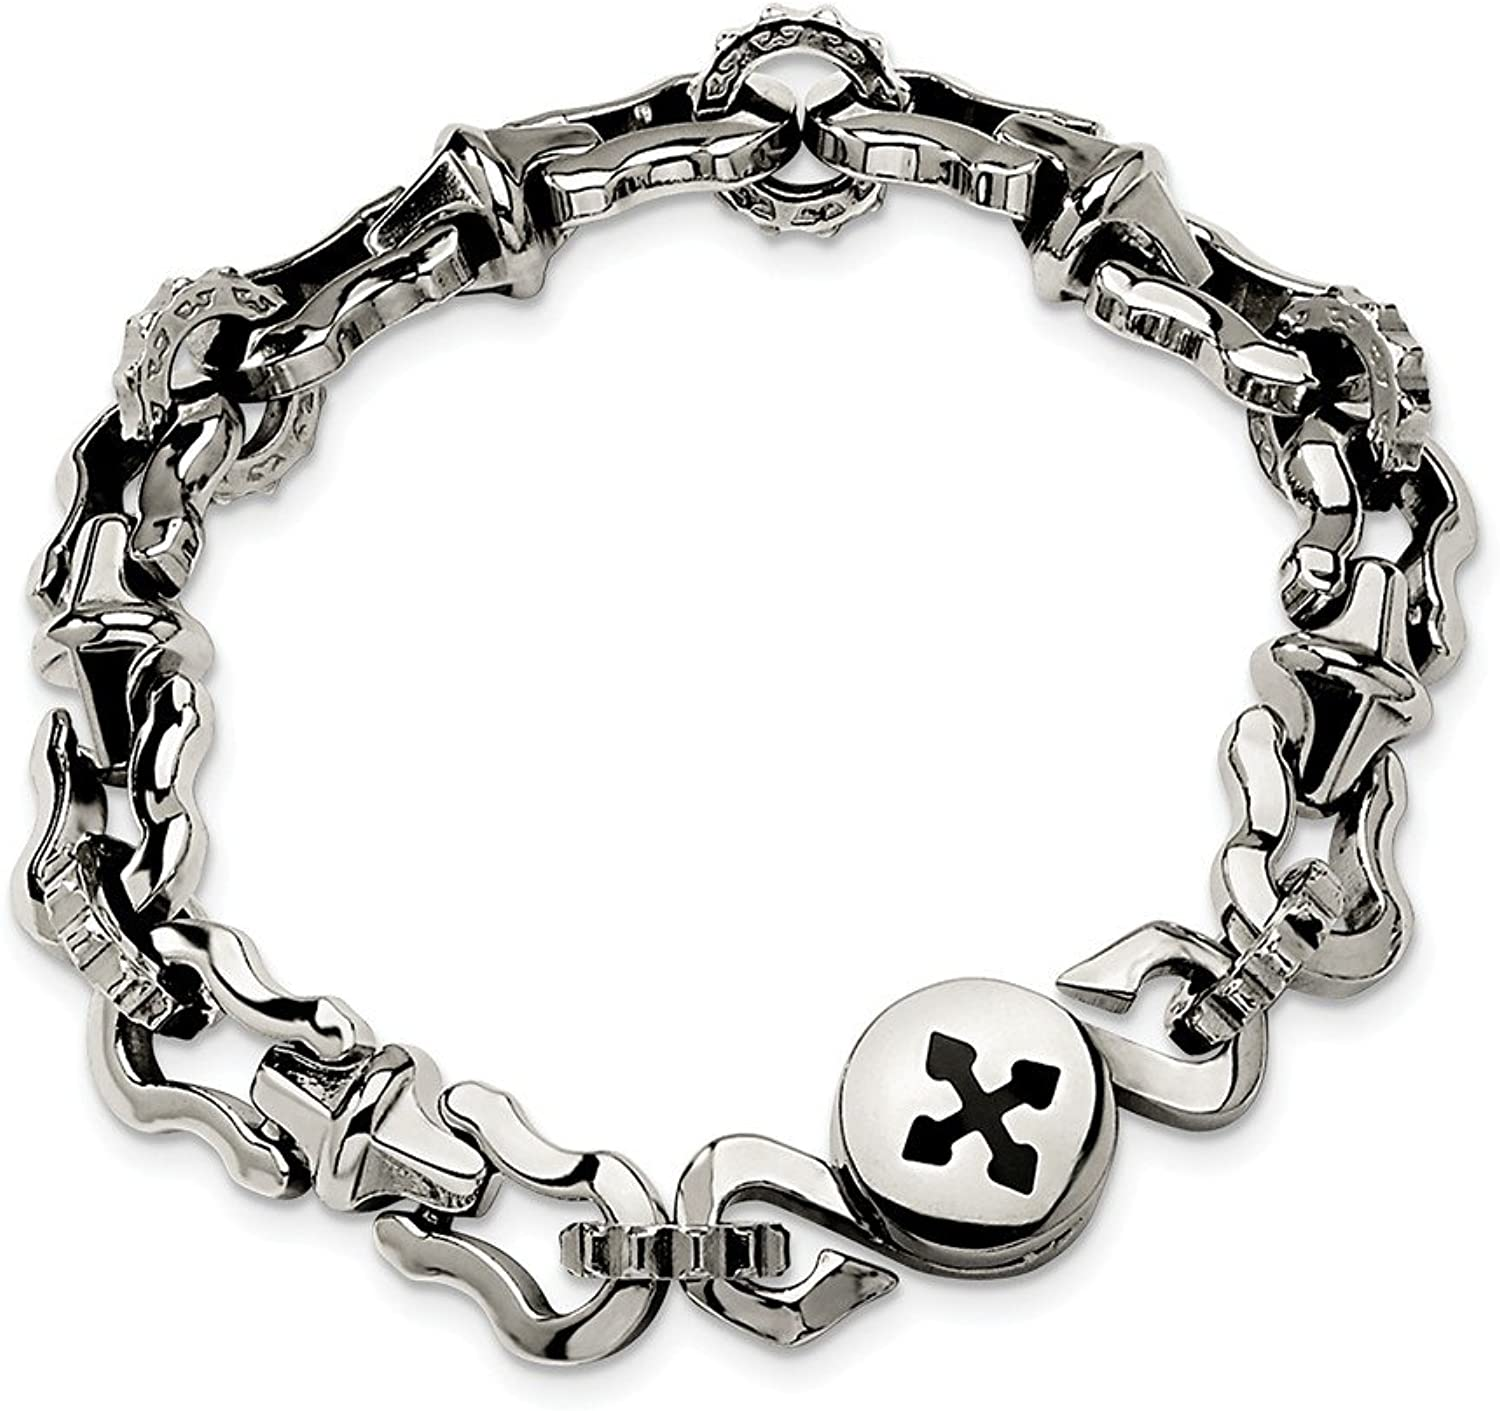 Beautiful Stainless Steel Polished Magnetic Clasp 8.5in Bracelet